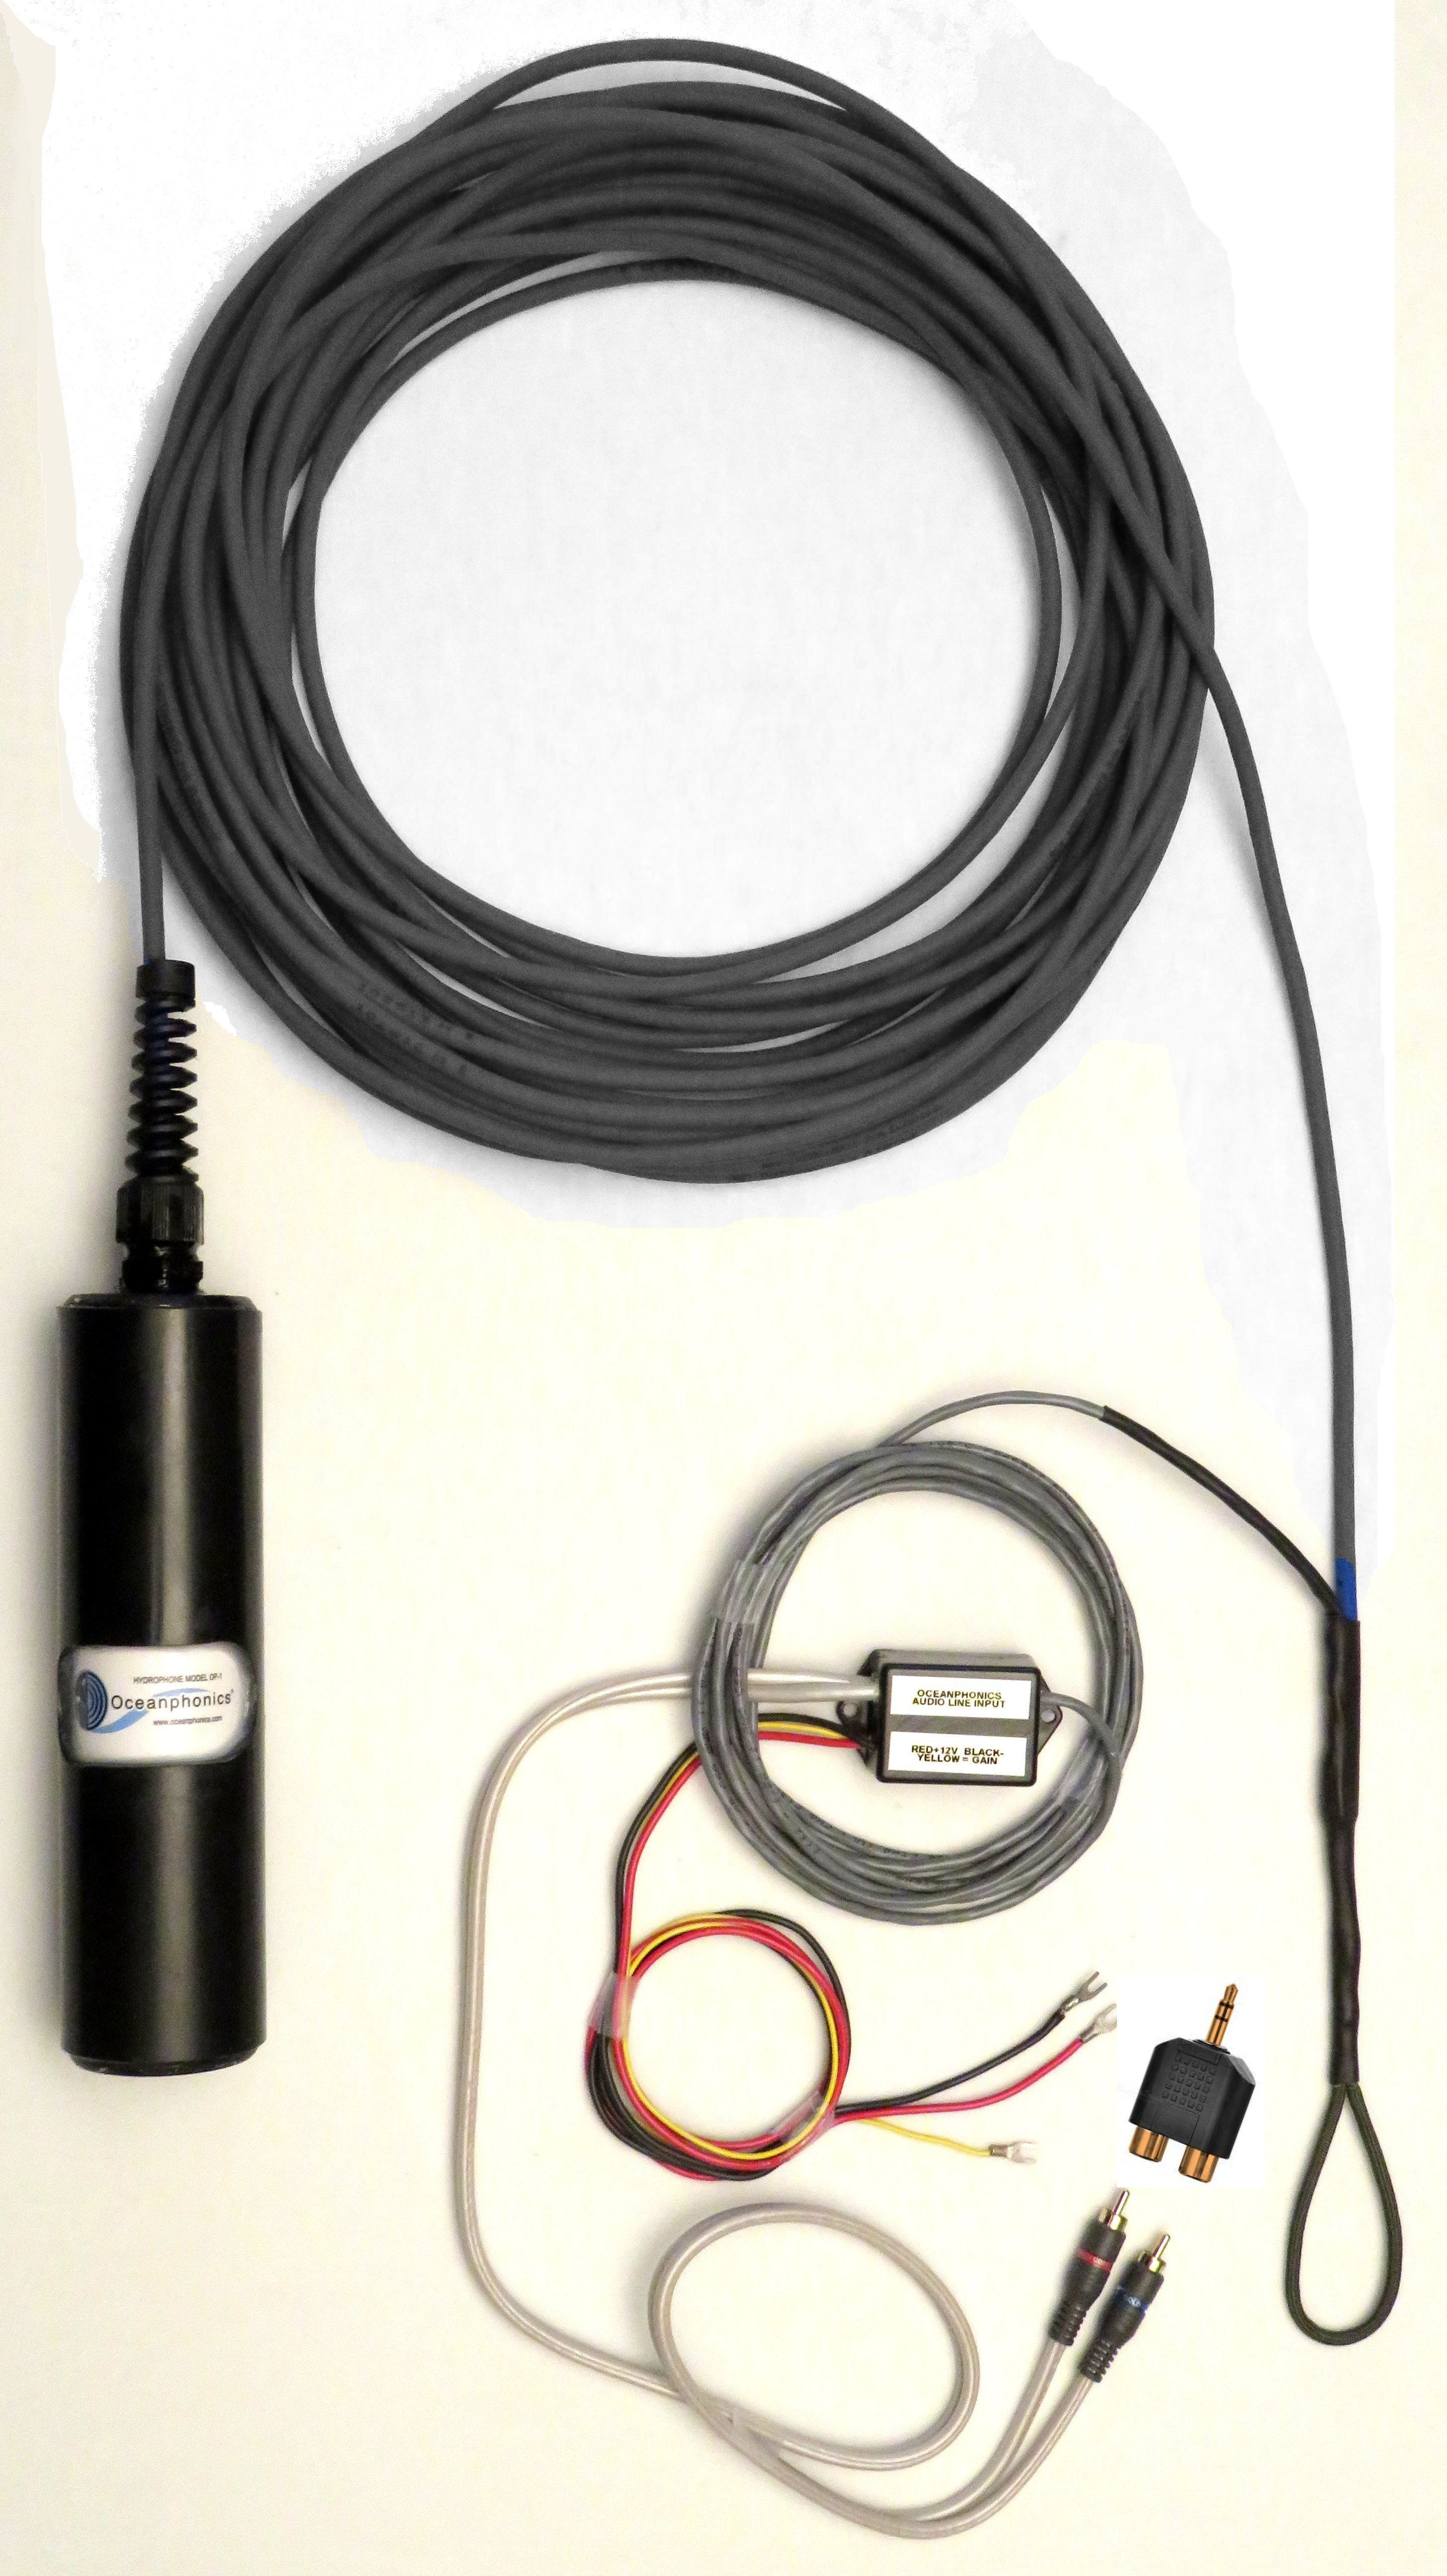 Model OP-1 Hydrophone with 25 foot cable